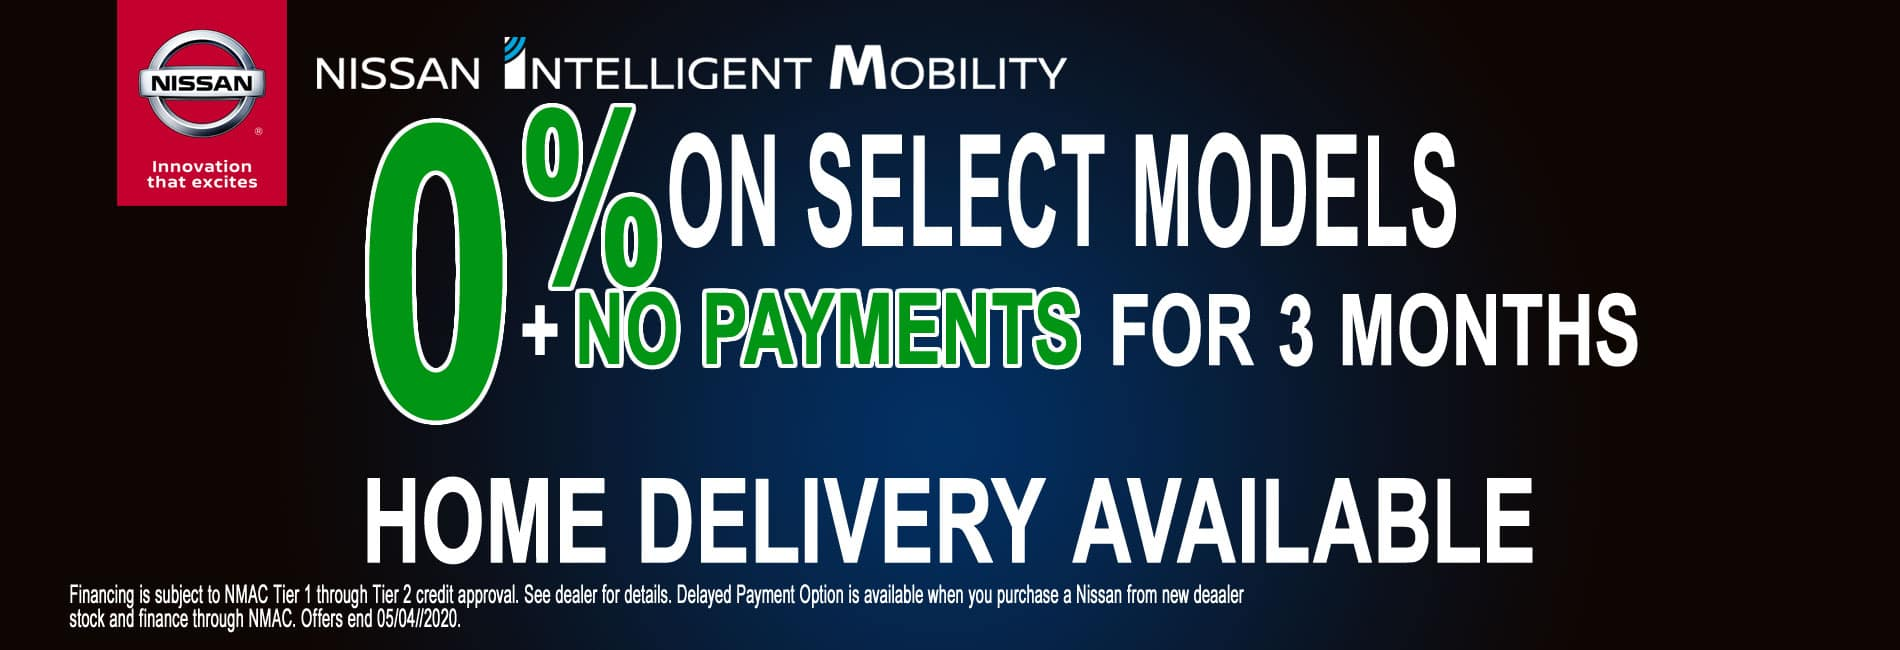 Get Zero Percent APR financing for 60 Months and No Payments for 3 Months on Select Models